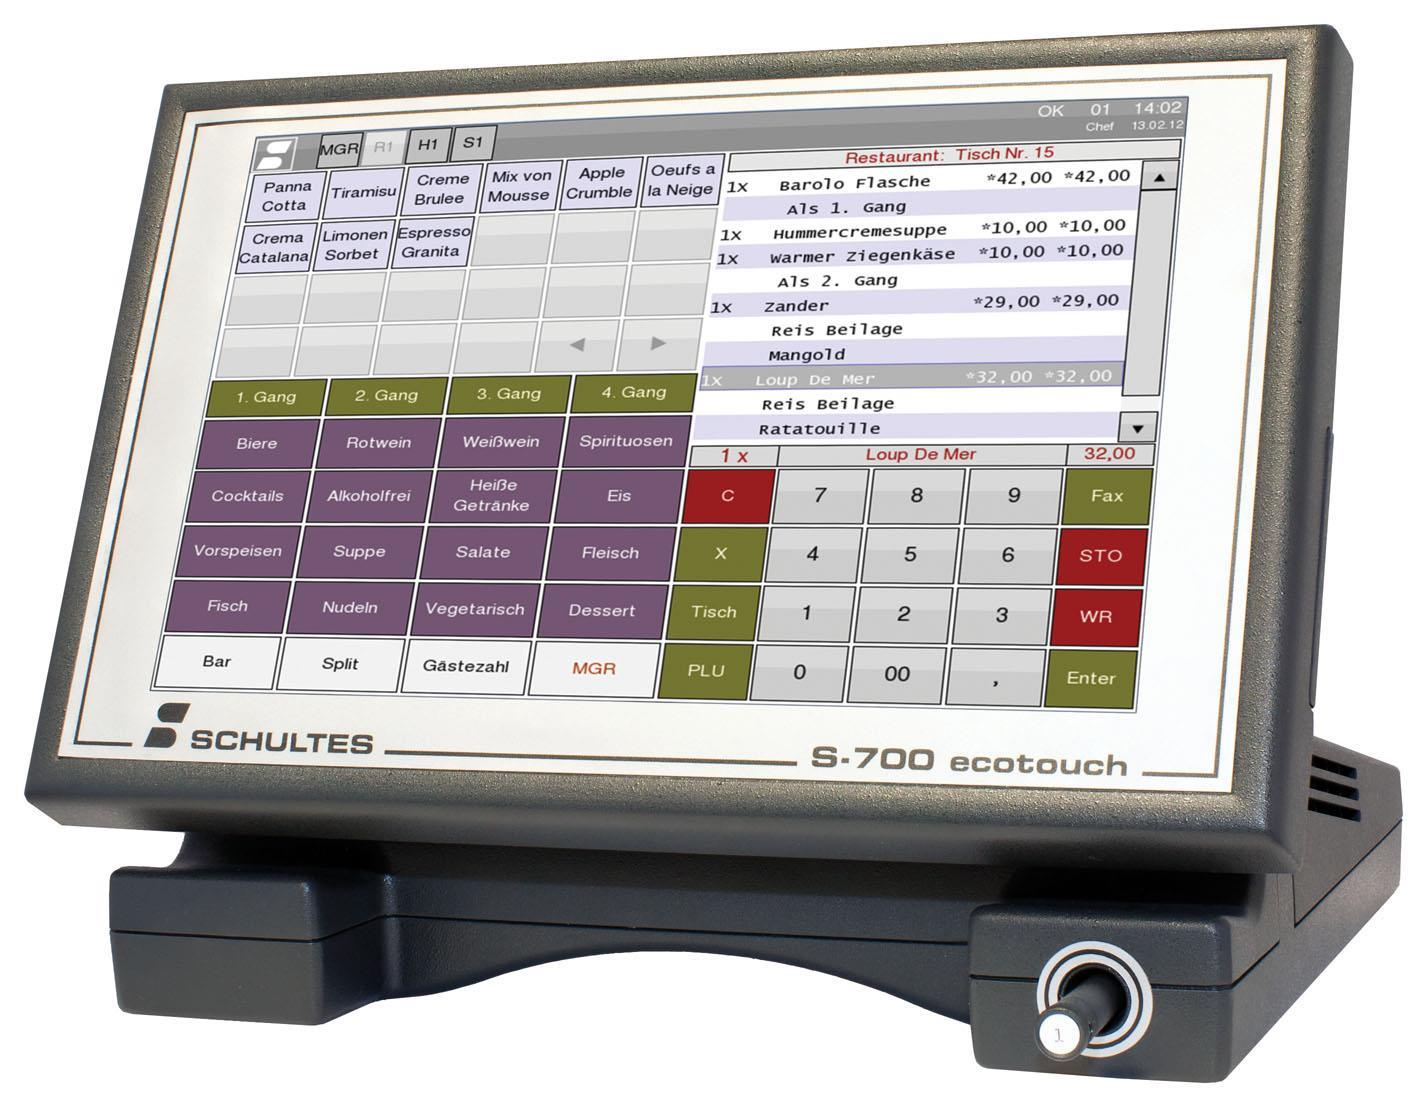 Schultes S-700 ecotouch